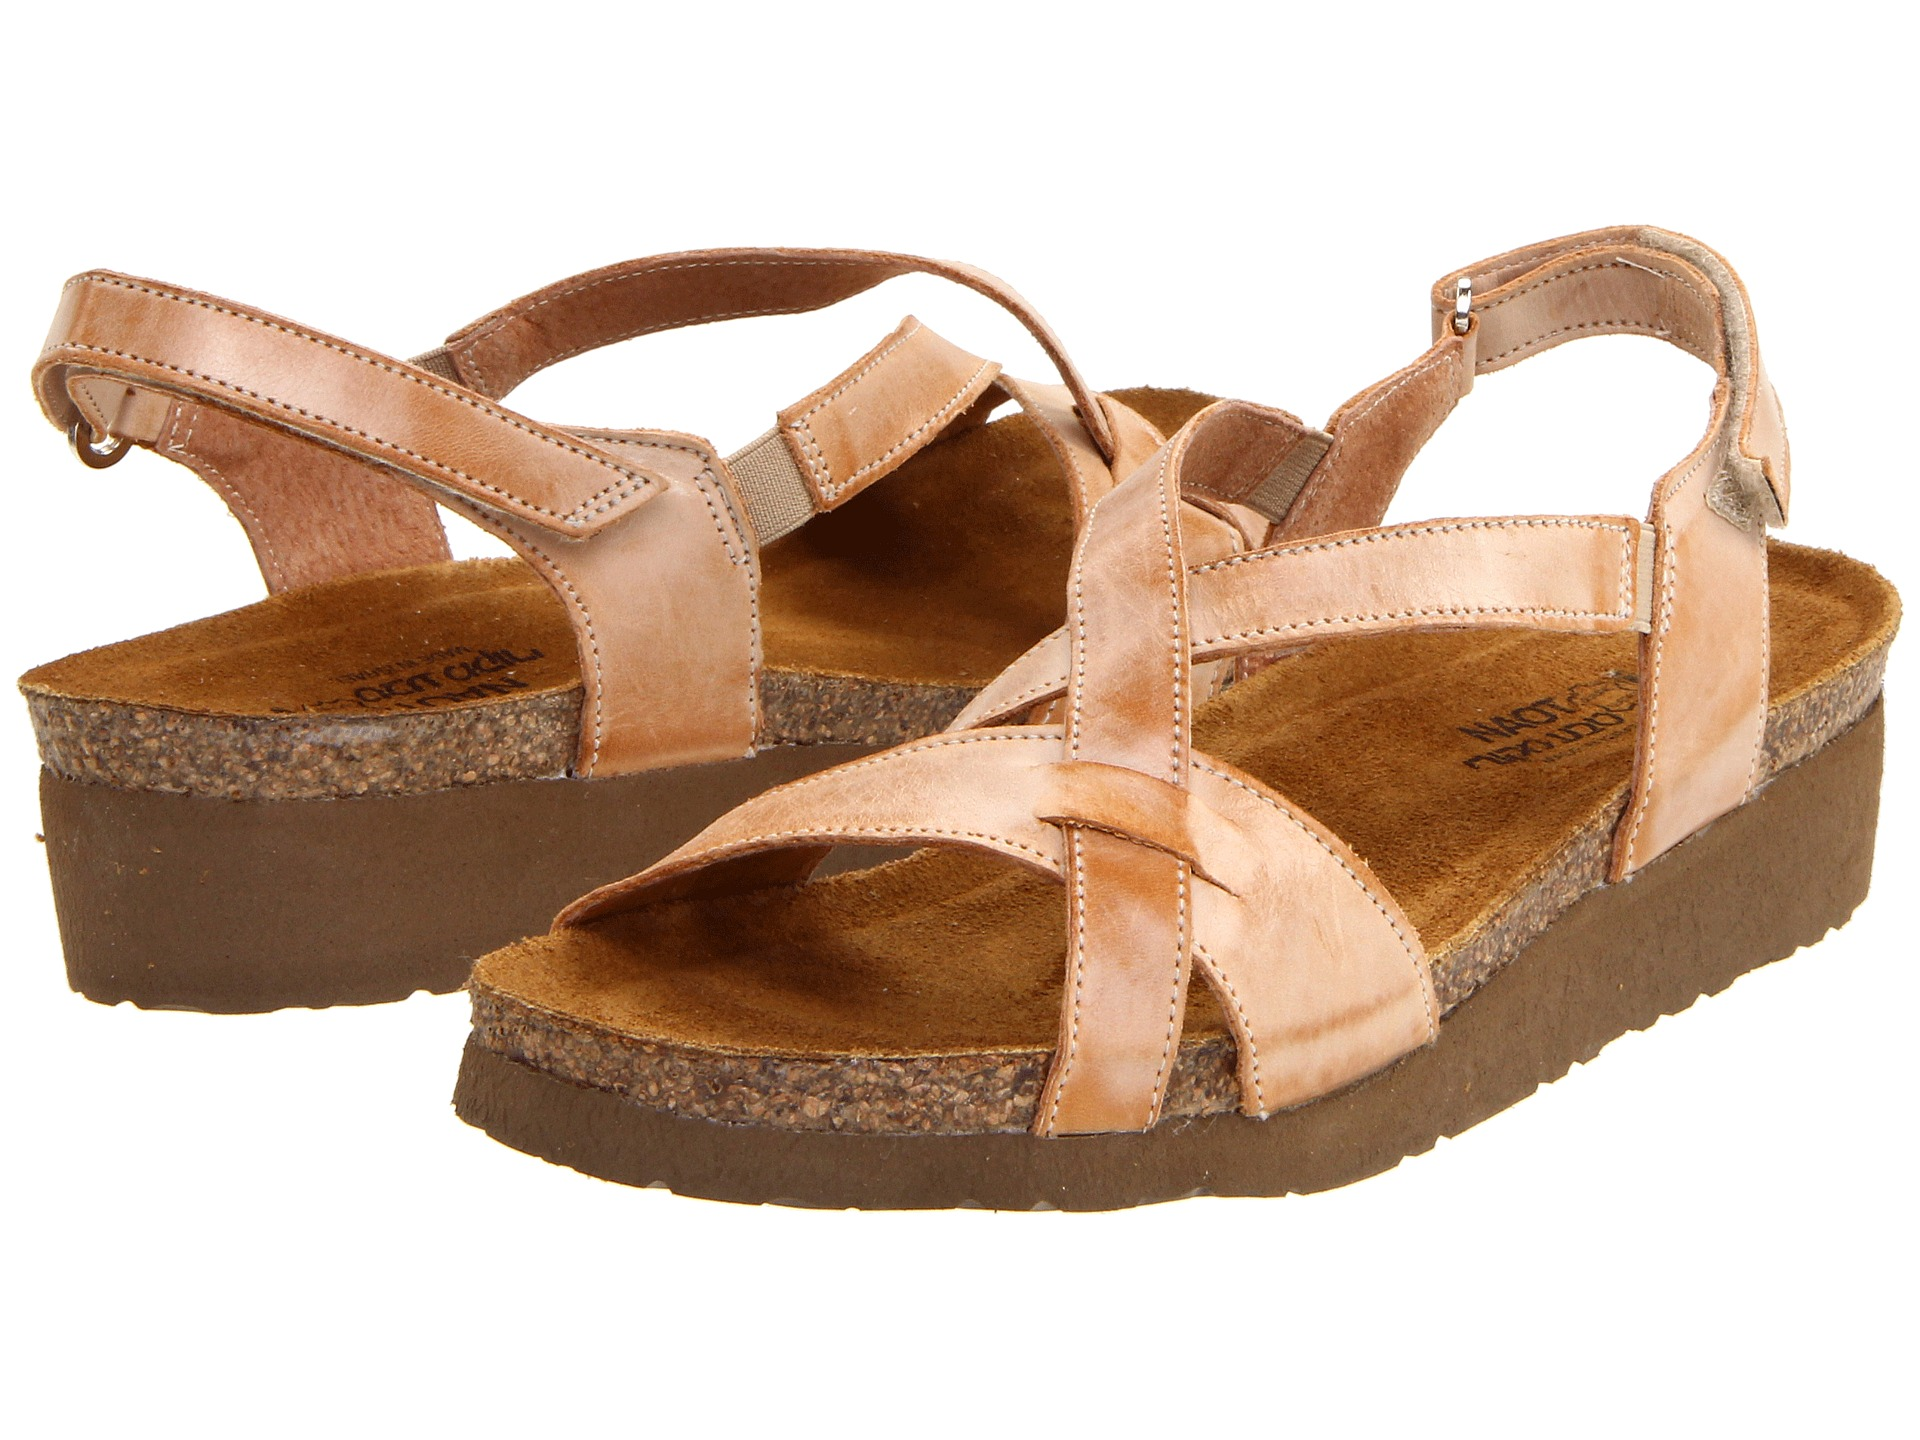 Discount naot sandals Women shoes online